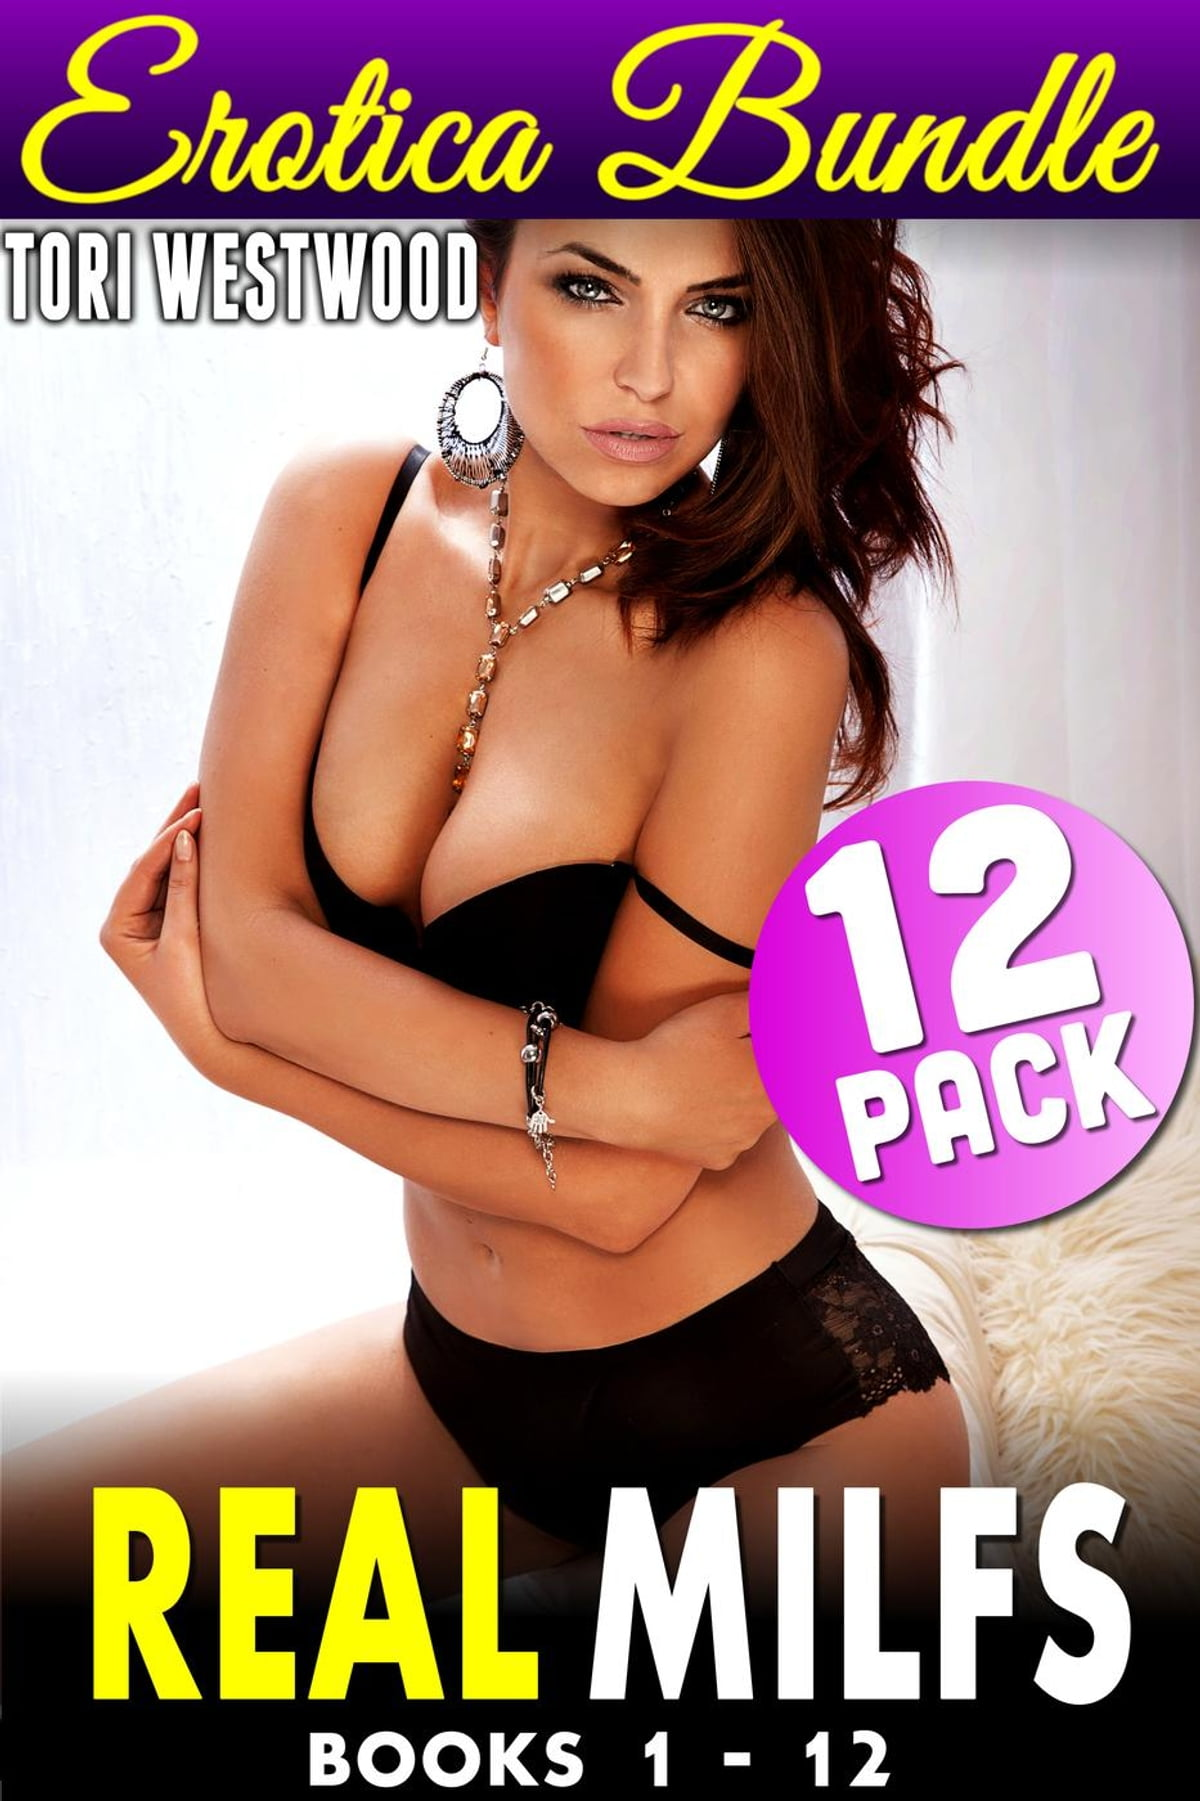 real milfs : 12 pack erotica bundle - books 1-12 (milf erotica